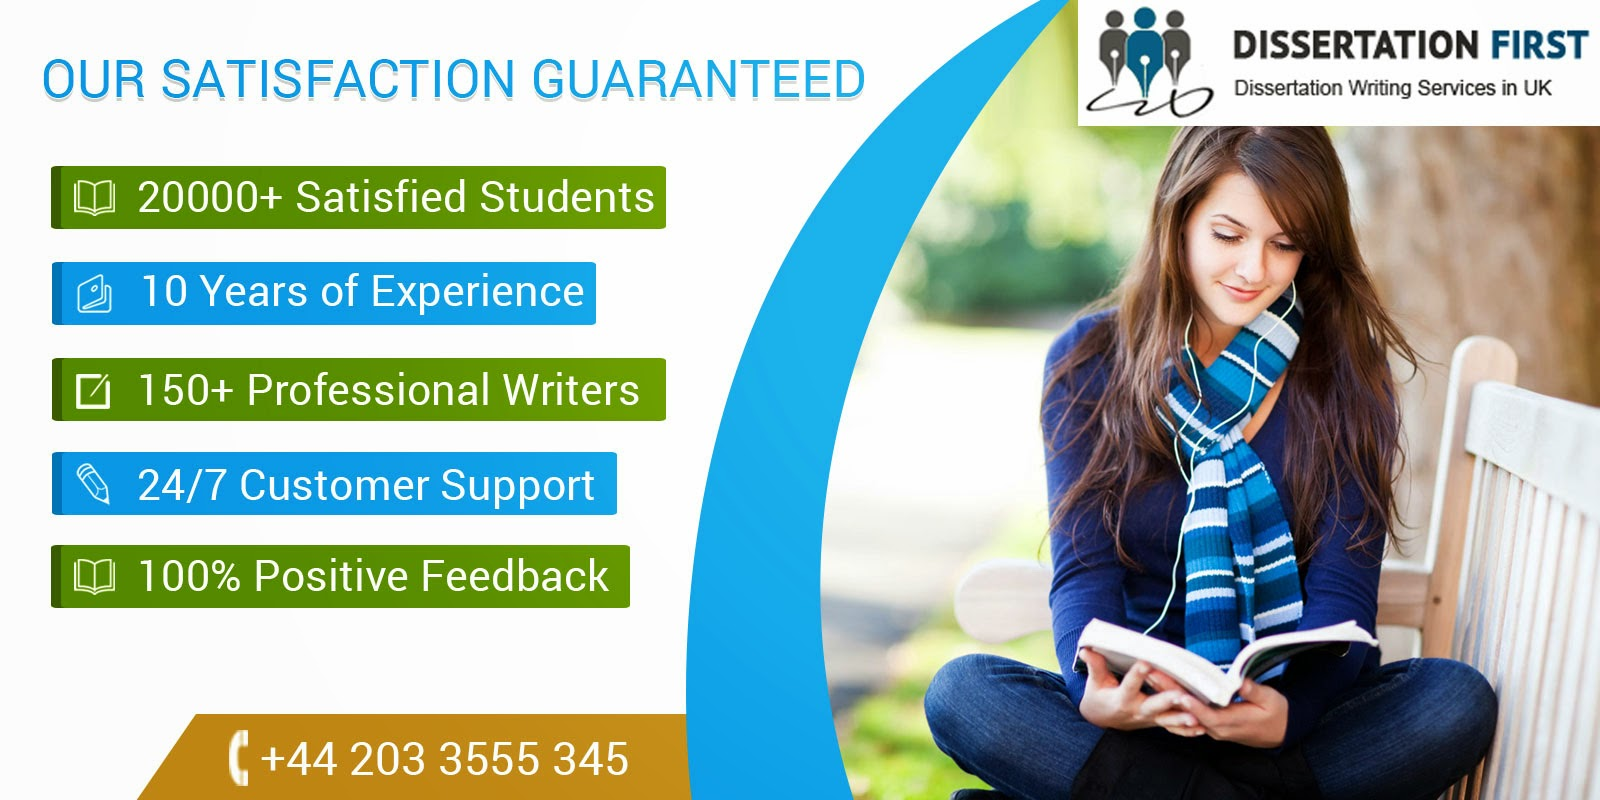 Dissertation services in uk help